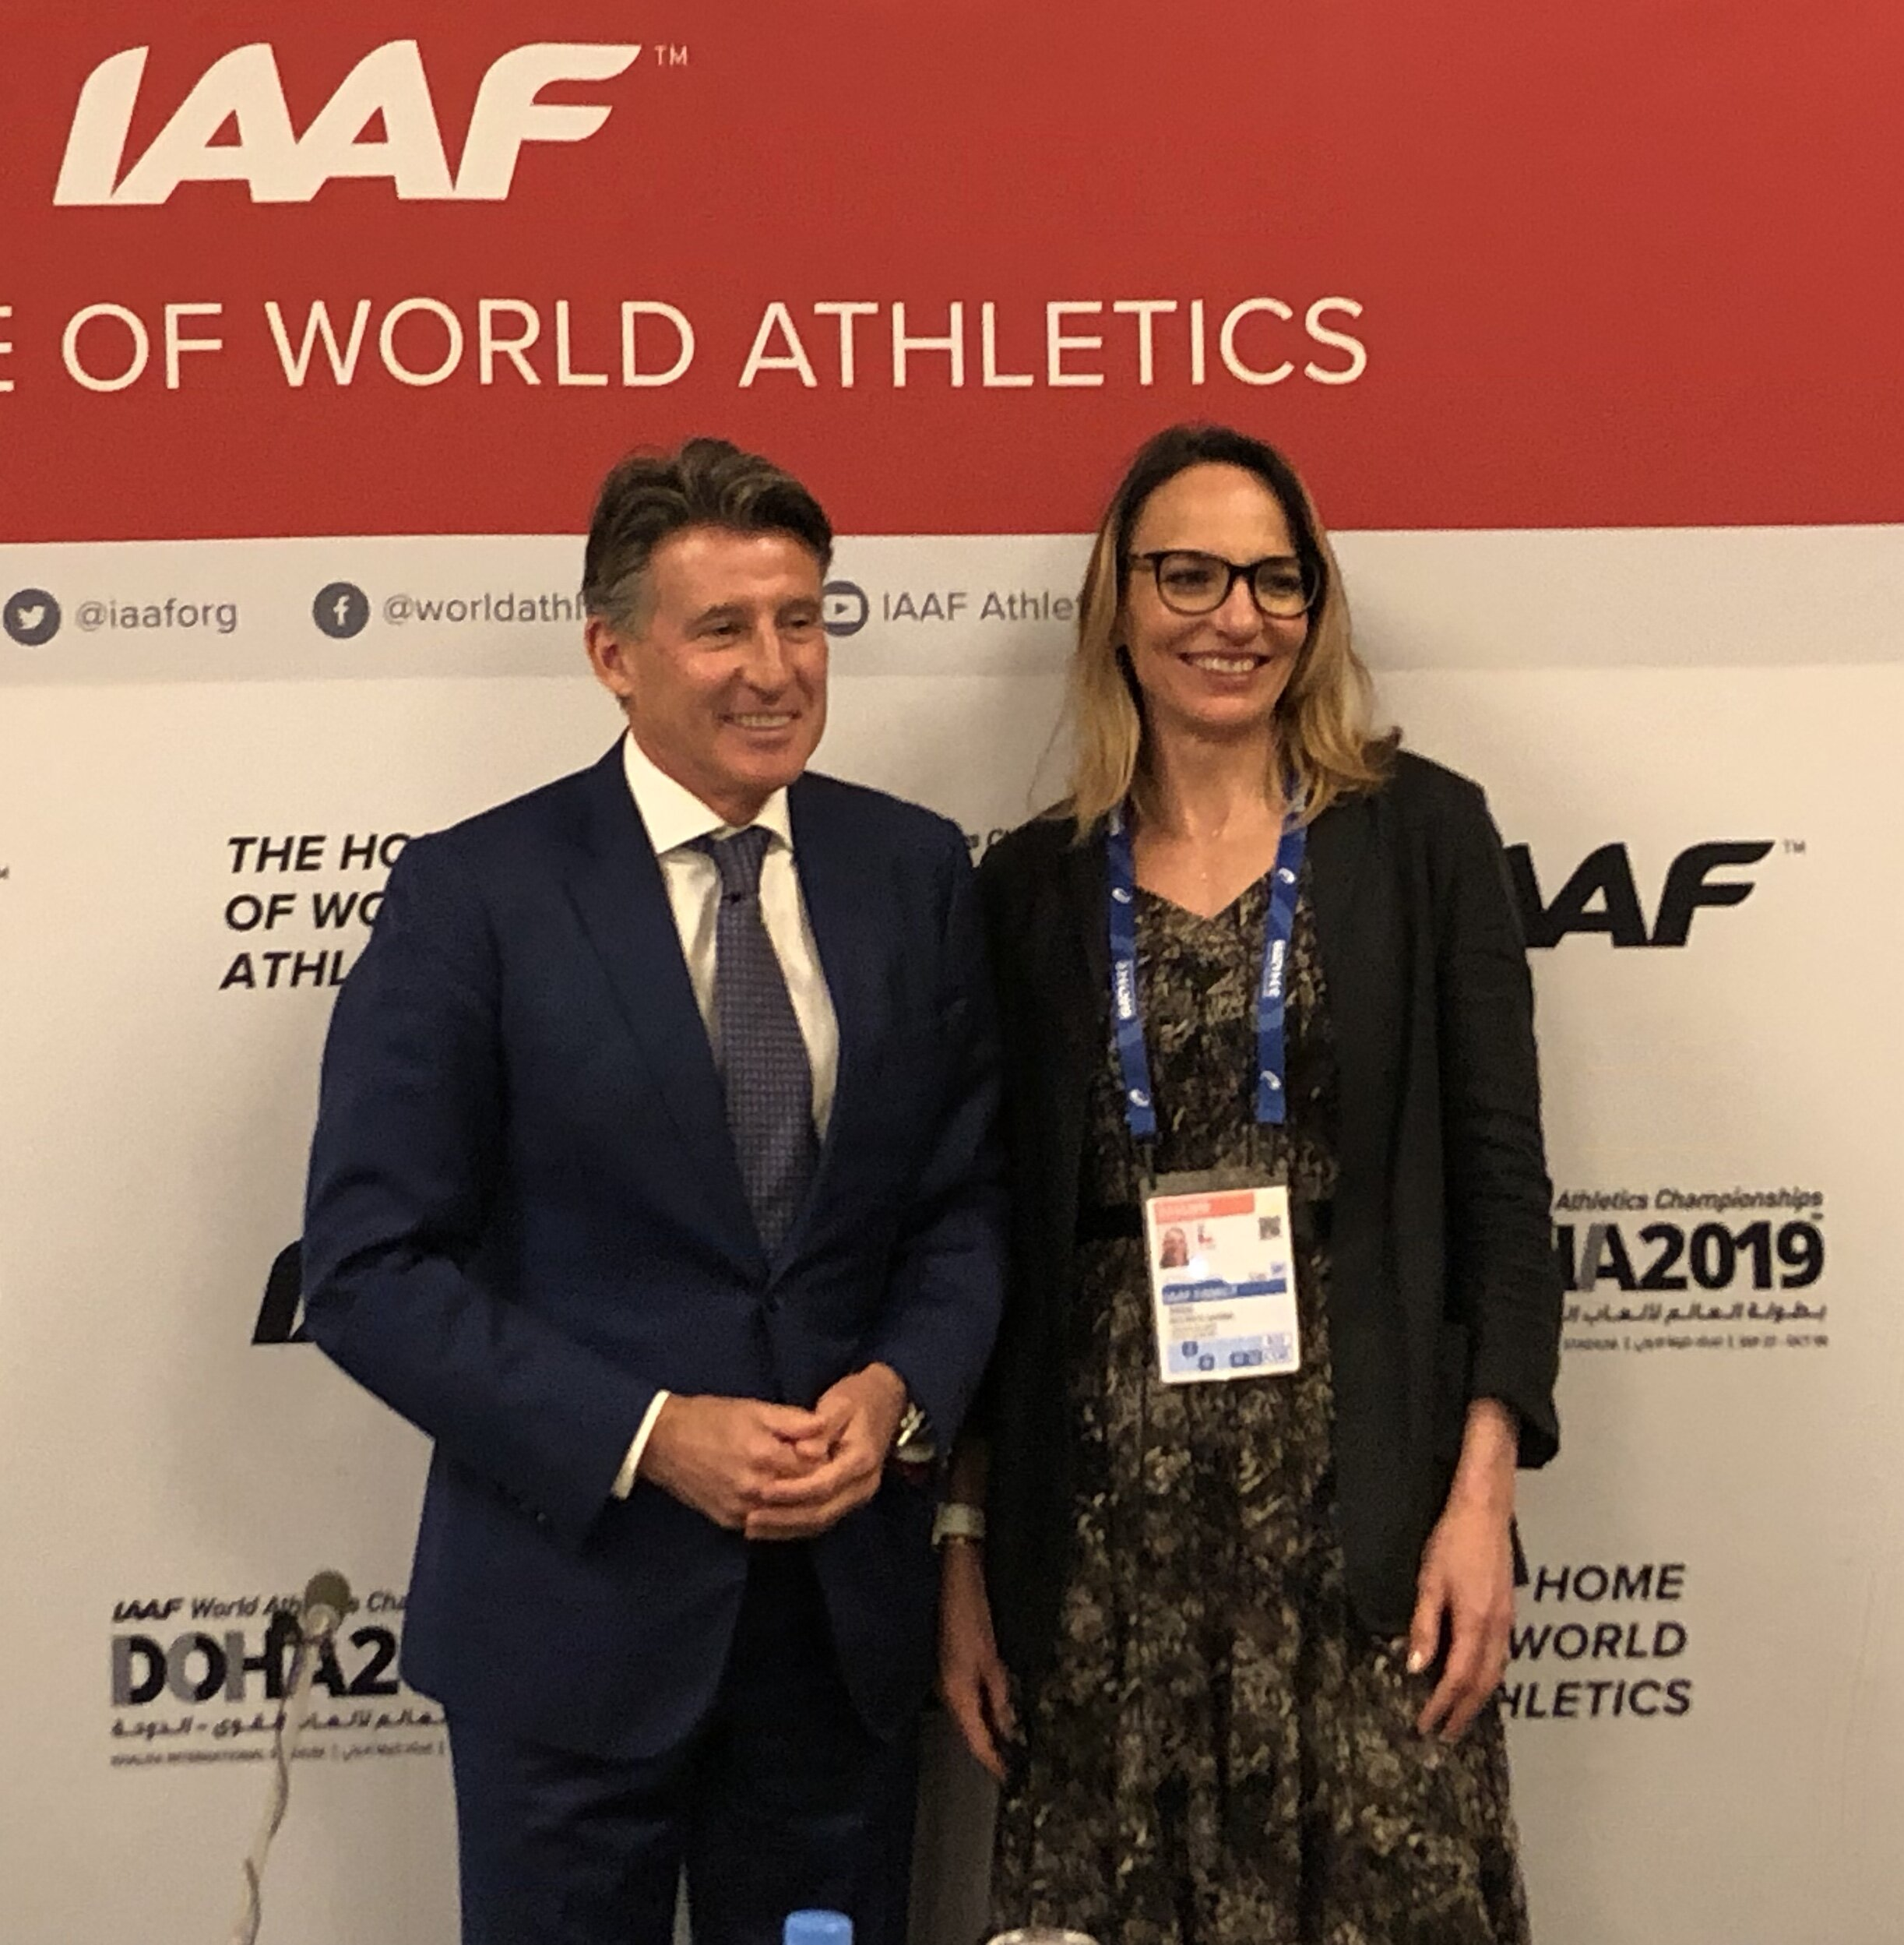 IAAF president Seb Coe and newly elected vice president Ximena Restrepo